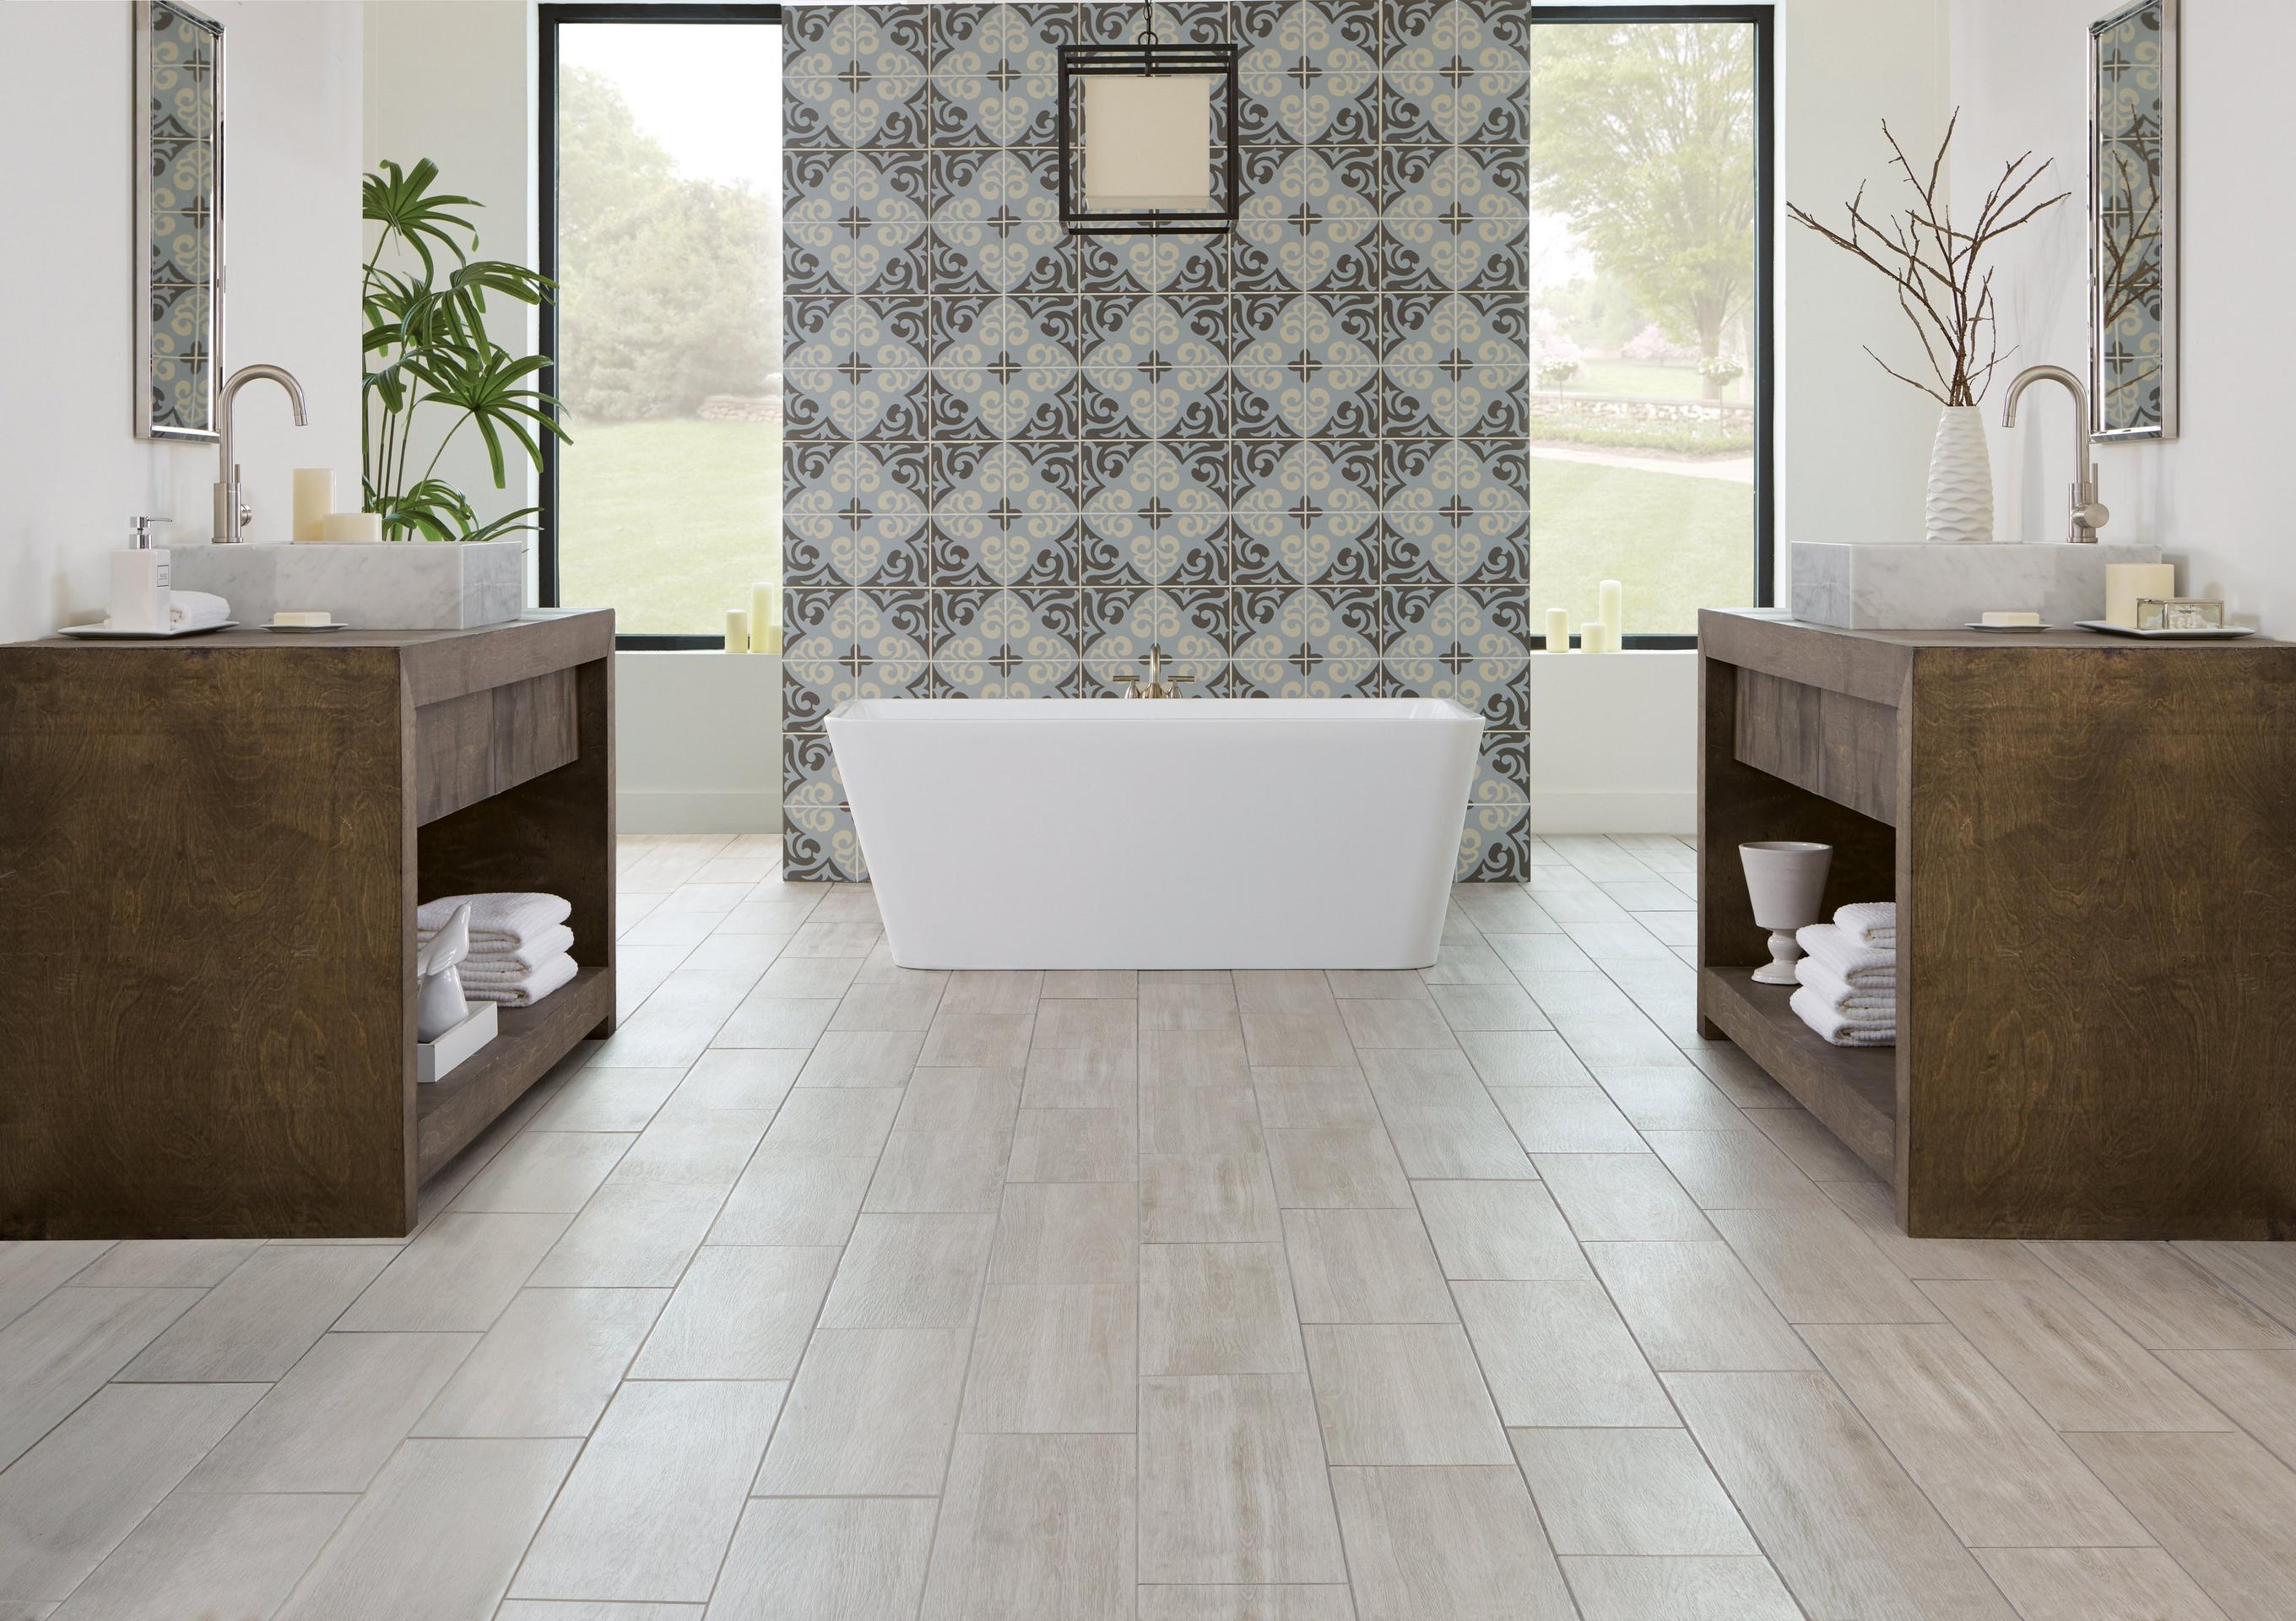 Bathroom 14 ronne gris ceramic tile bedford deco porcelain tile